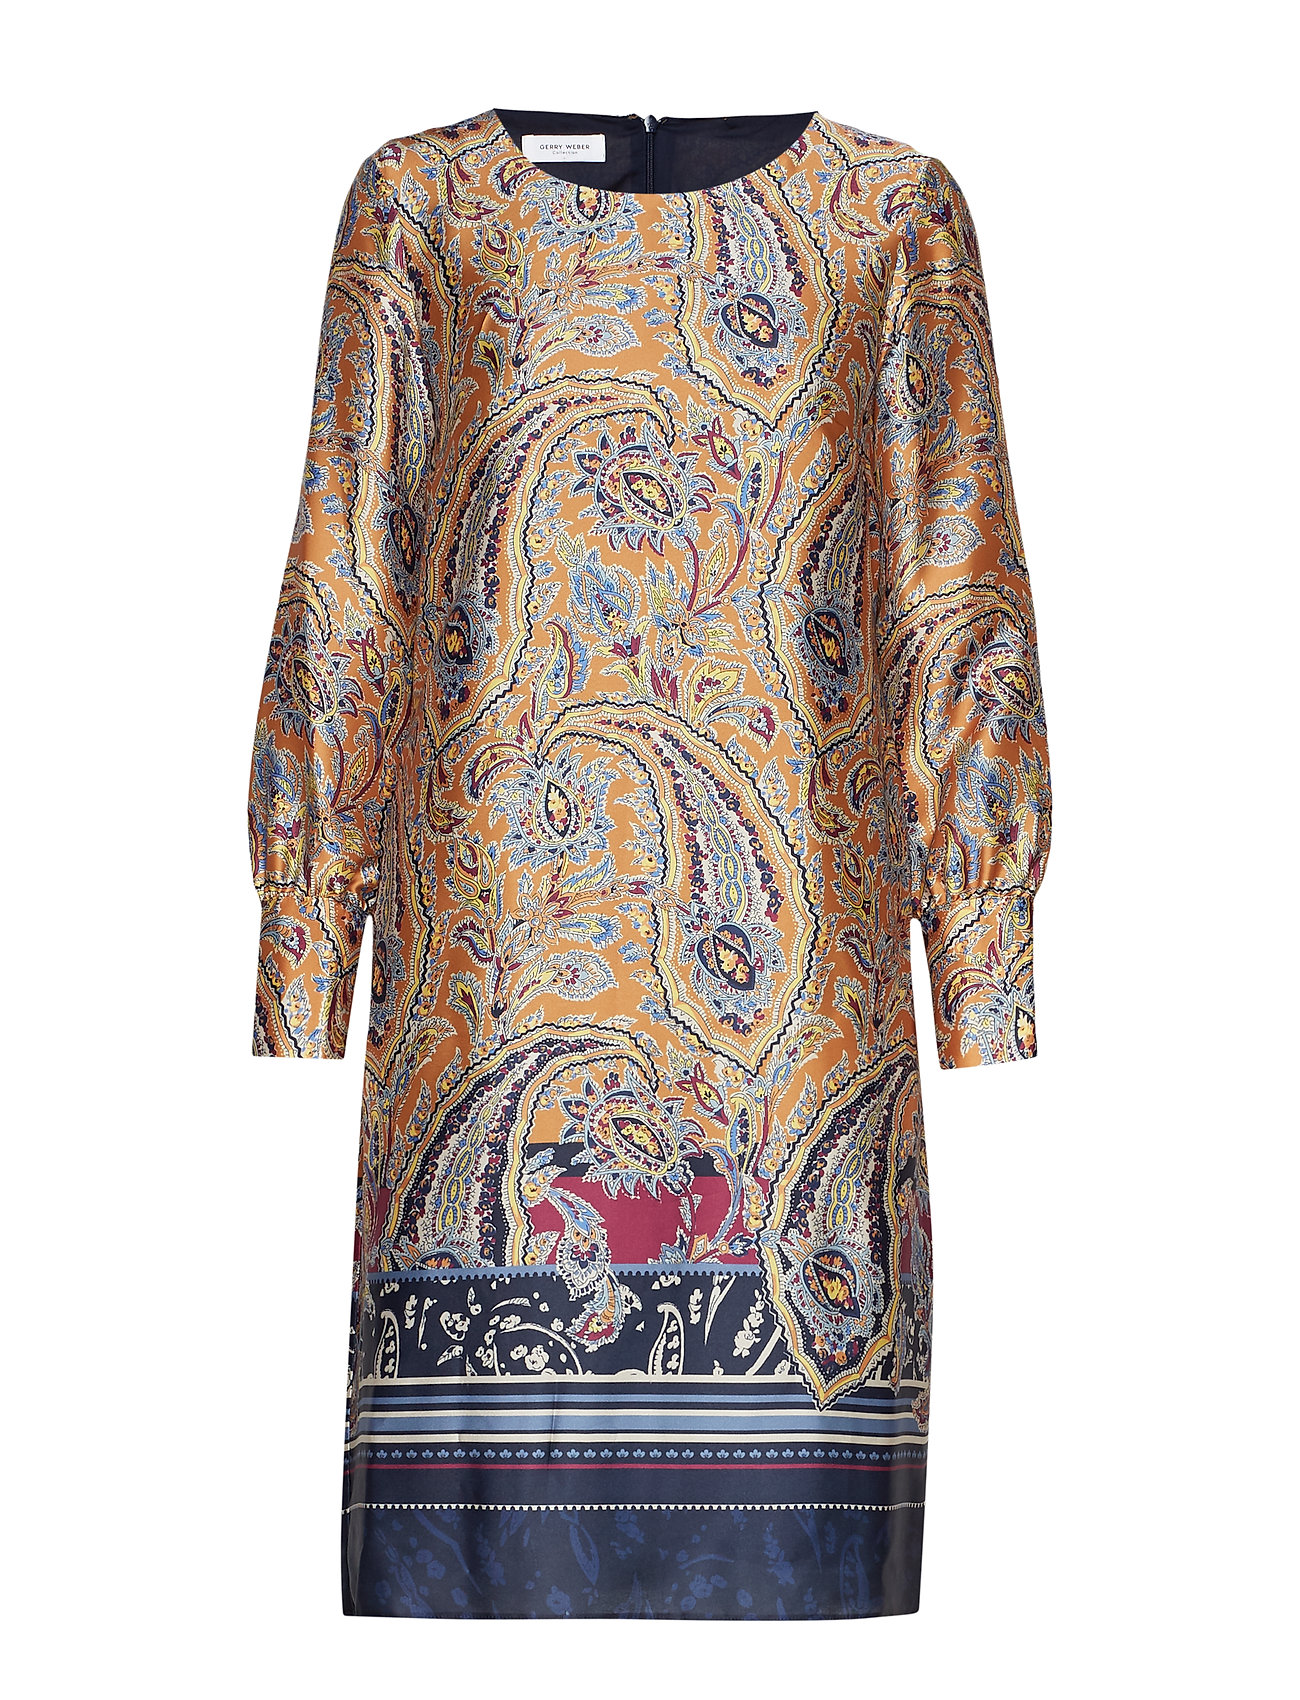 Gerry Weber DRESS WOVEN FABRIC - YELLOW MULTICOLOR PRINT